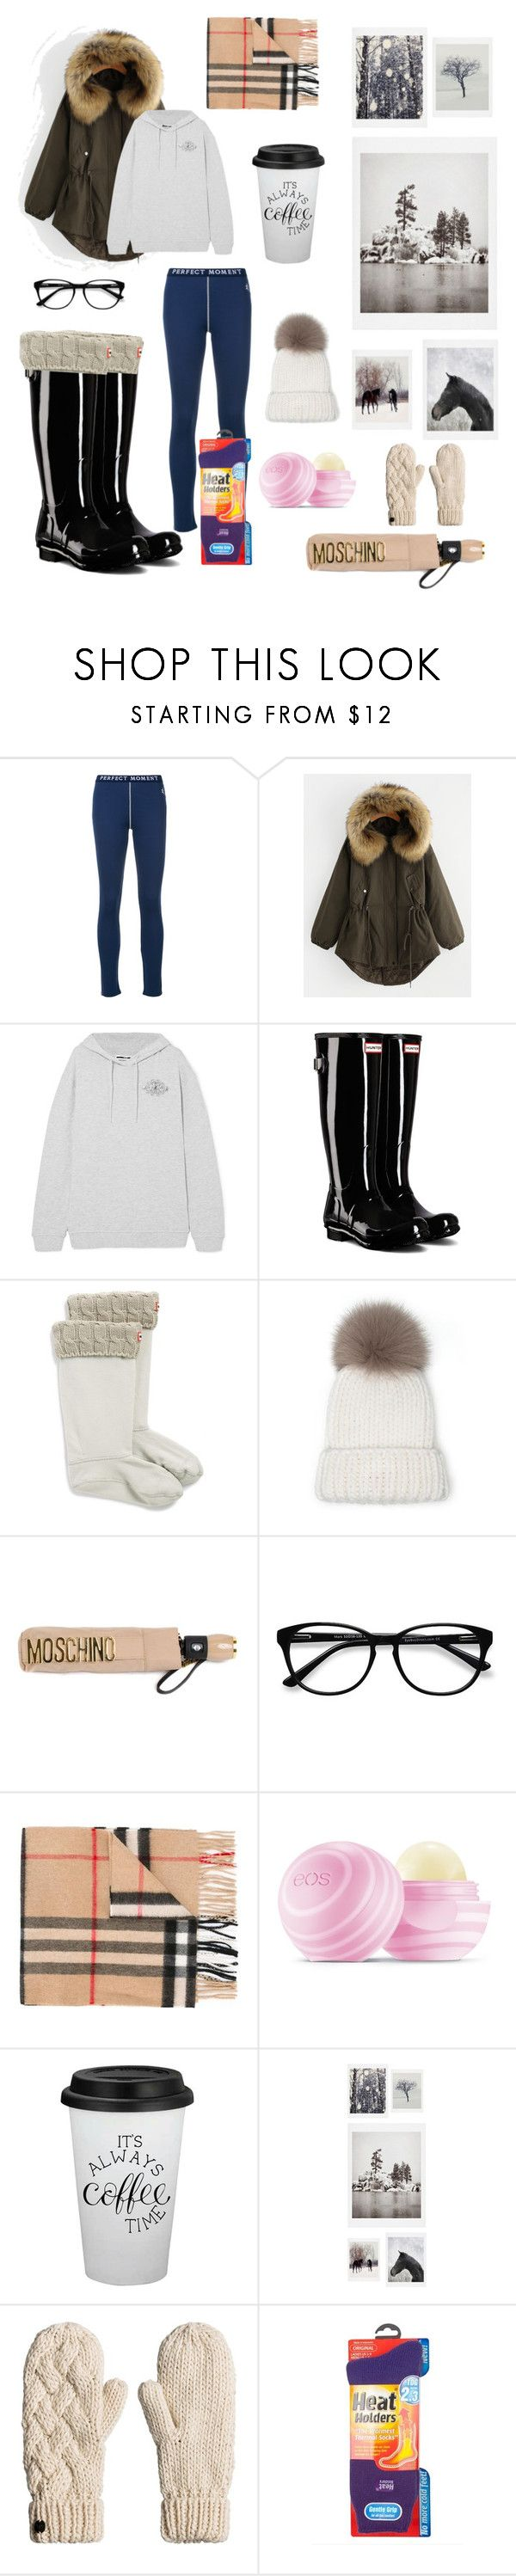 """""""Winter ❄️"""" by grapes-beth ❤ liked on Polyvore featuring Perfect Moment, McQ by Alexander McQueen, Hunter, Moschino, EyeBuyDirect.com, Burberry, Eos, DENY Designs and Grabber"""